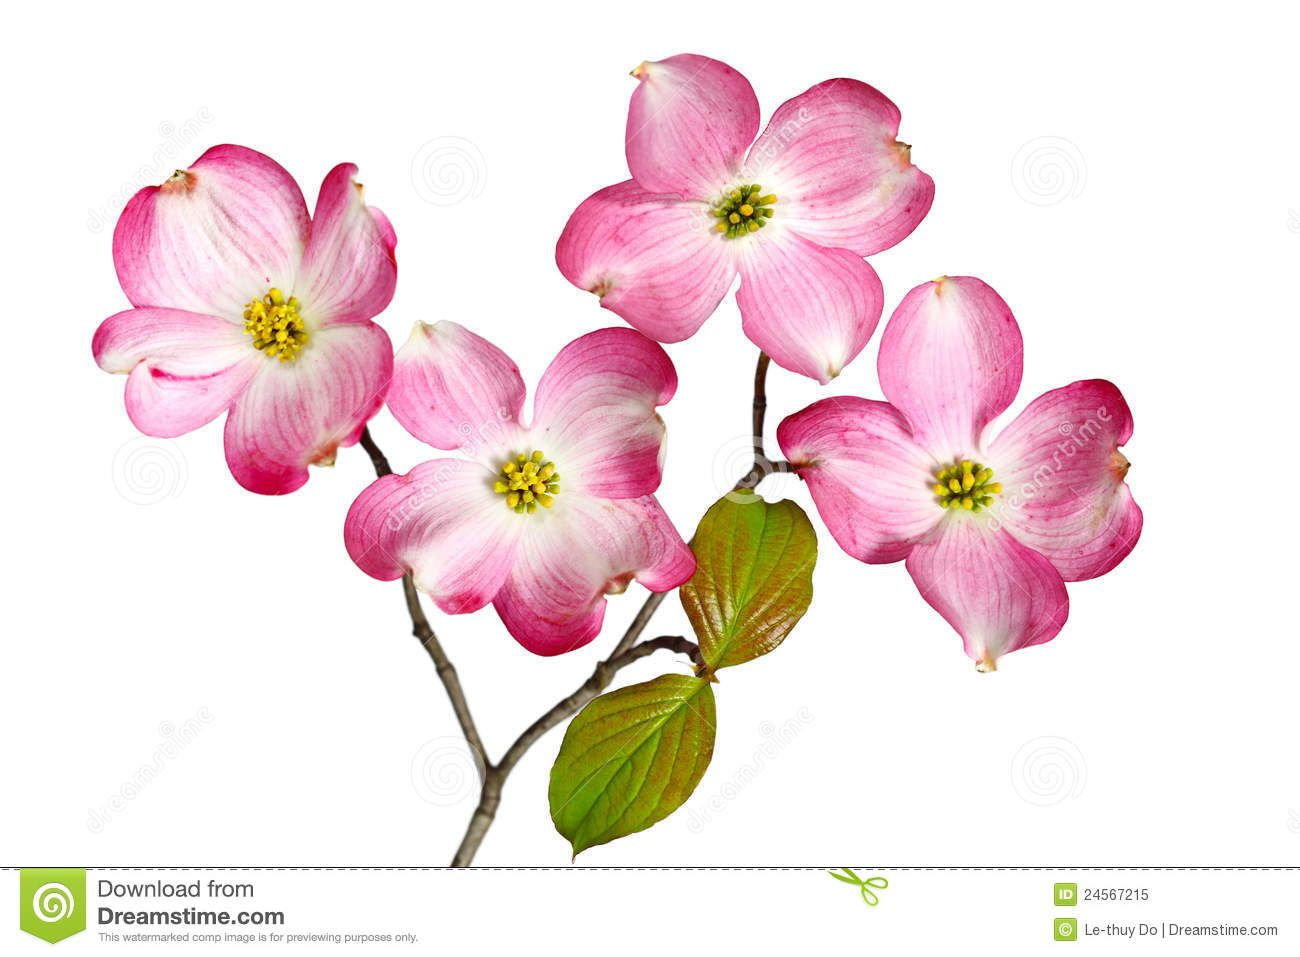 Pink white dogwood flowers stock photos image 24508523 tattoos pink white dogwood flowers stock photos image 24508523 mightylinksfo